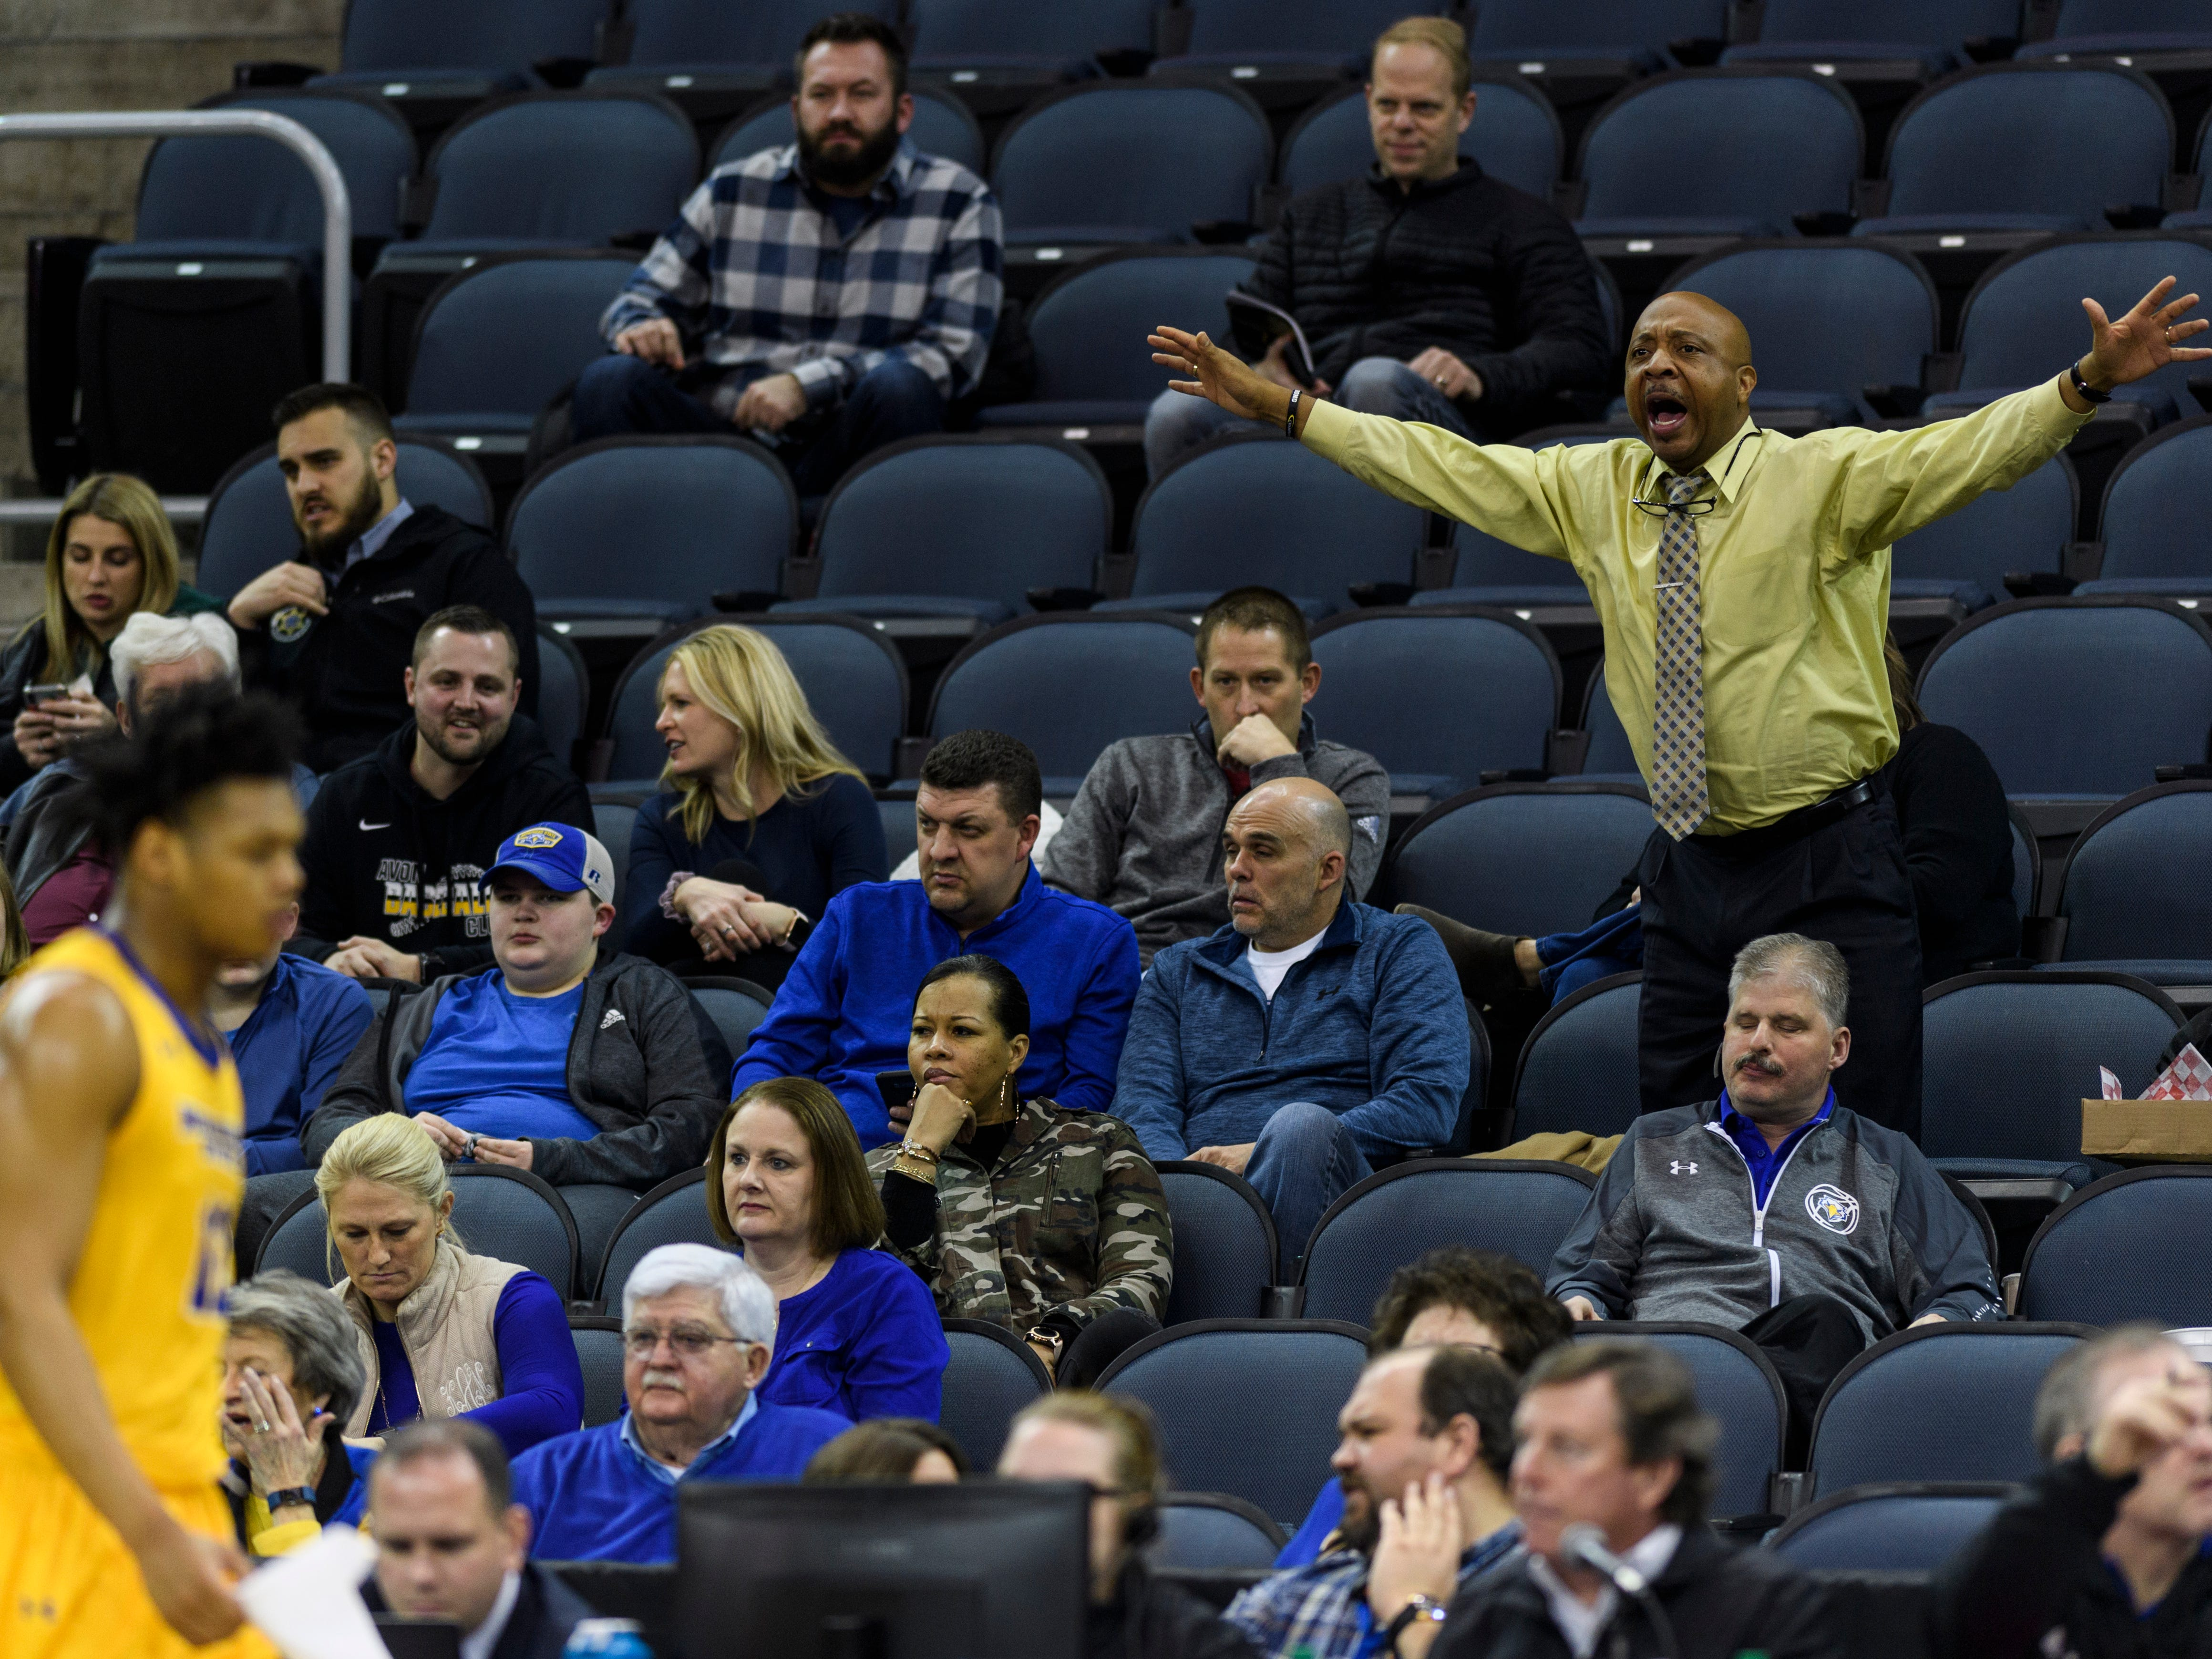 Dennis Henson, top right, reacts to the Morehead State Eagles versus Southern Illinois University Edwardsville Cougars game during the Ohio Valley Conference Tournament at Ford Center in Evansville, Ind., Wednesday, March 6, 2019. The Eagles, Henson's team, defeated the Cougars, 72-68.